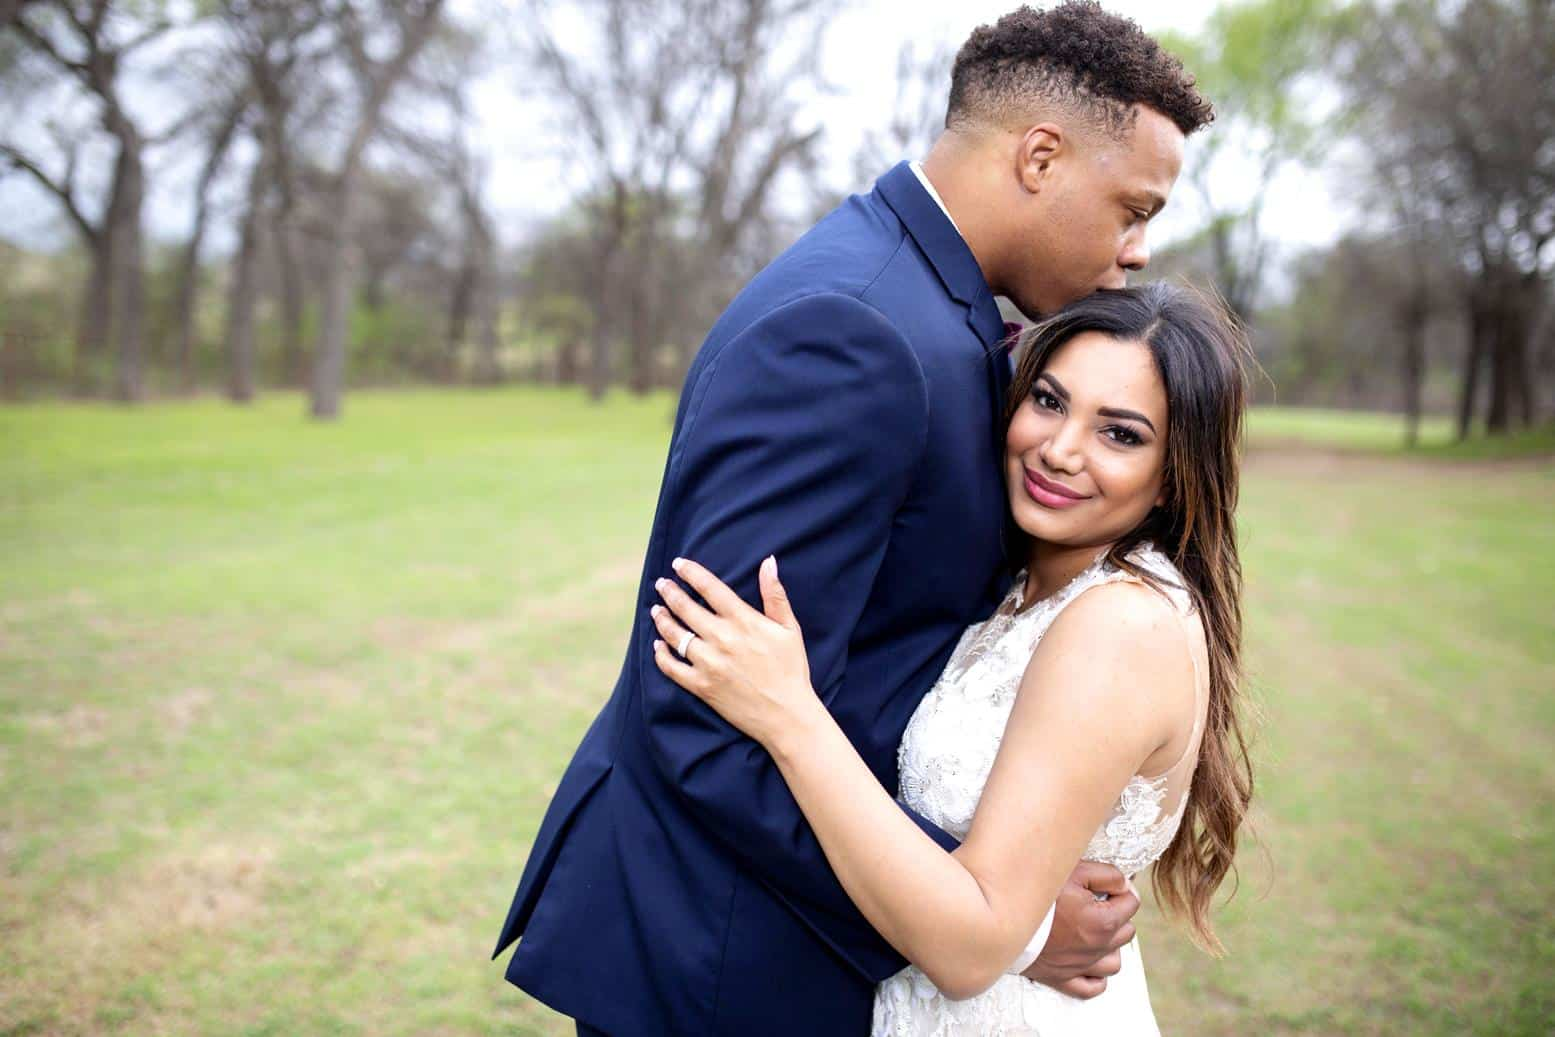 Married at First Sight Tristan Thompson Mia Bally Arrest